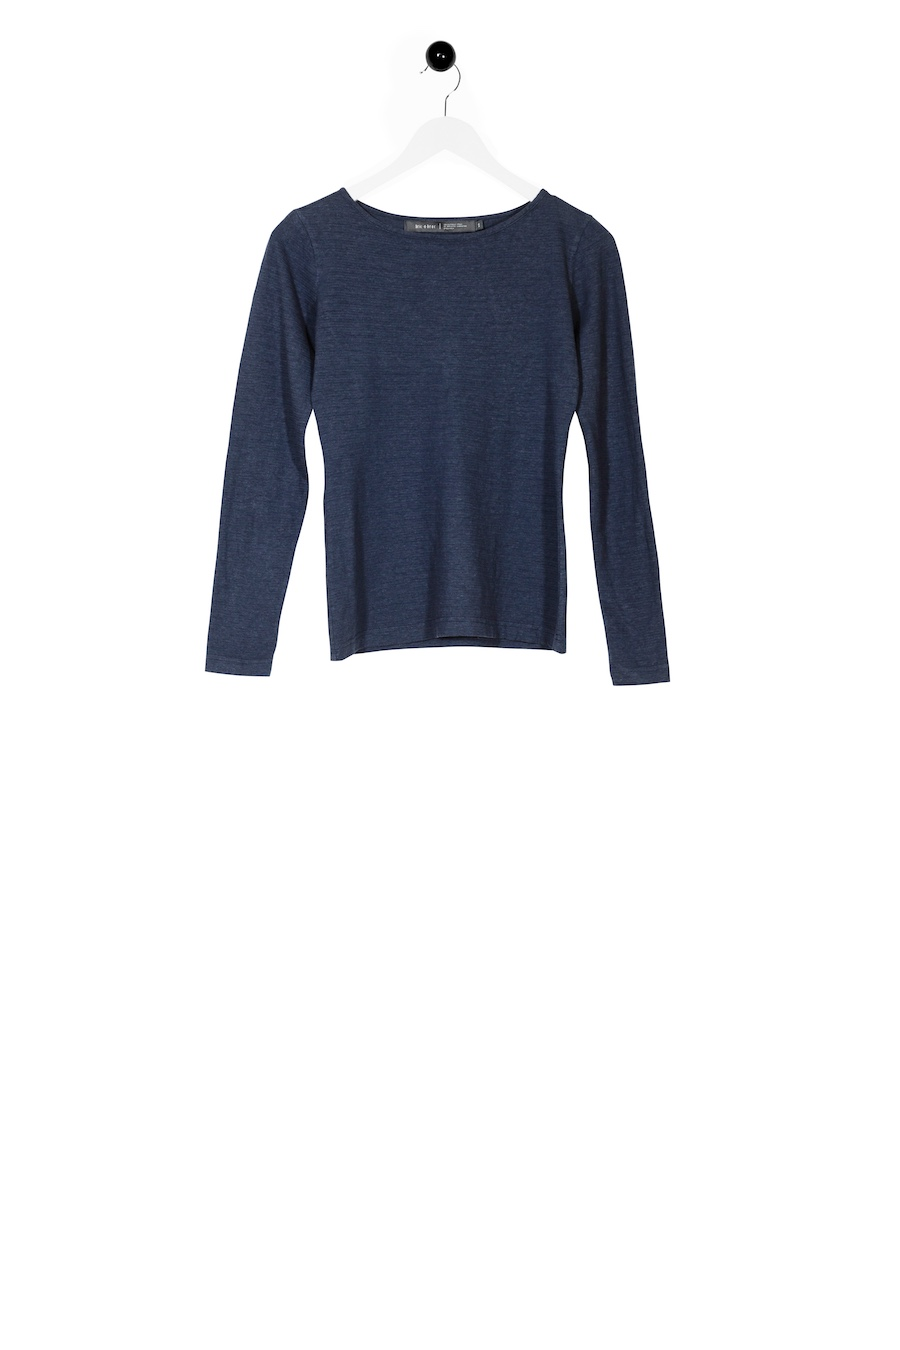 Örtofta Sweater